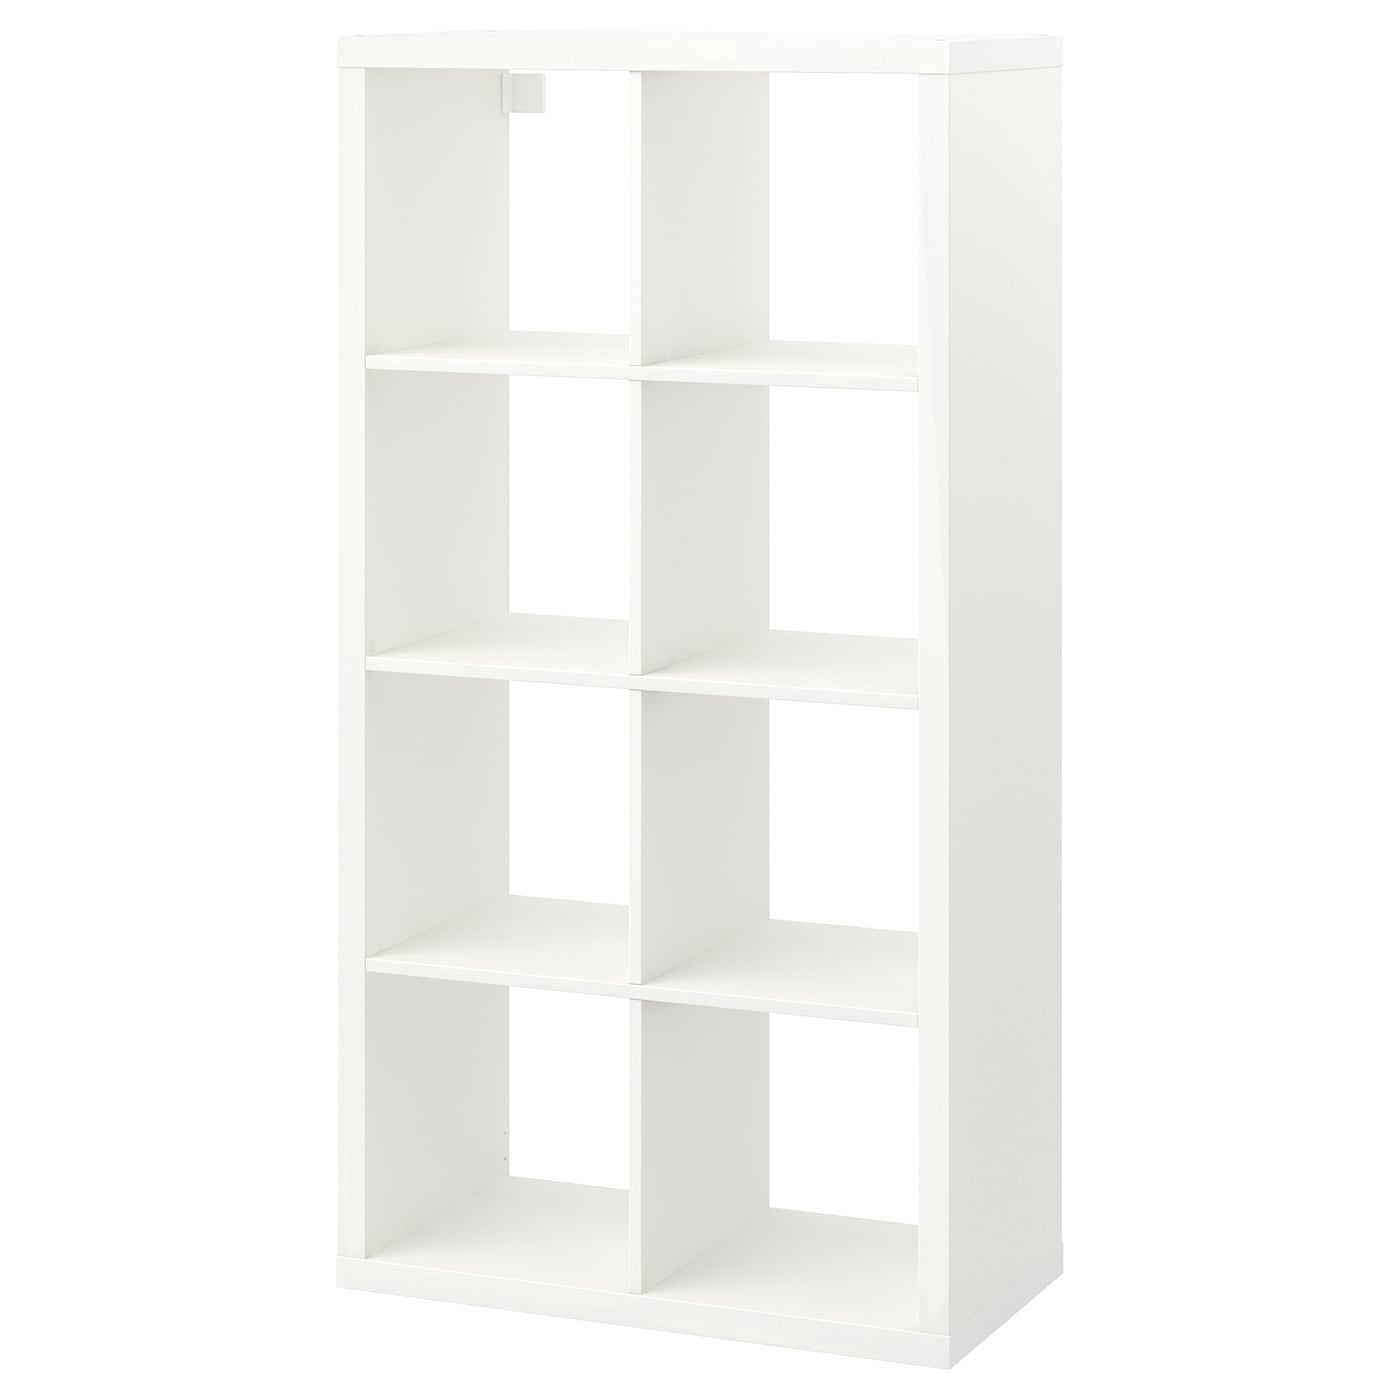 kallax shelving unit white 77 x 147 cm - ikea